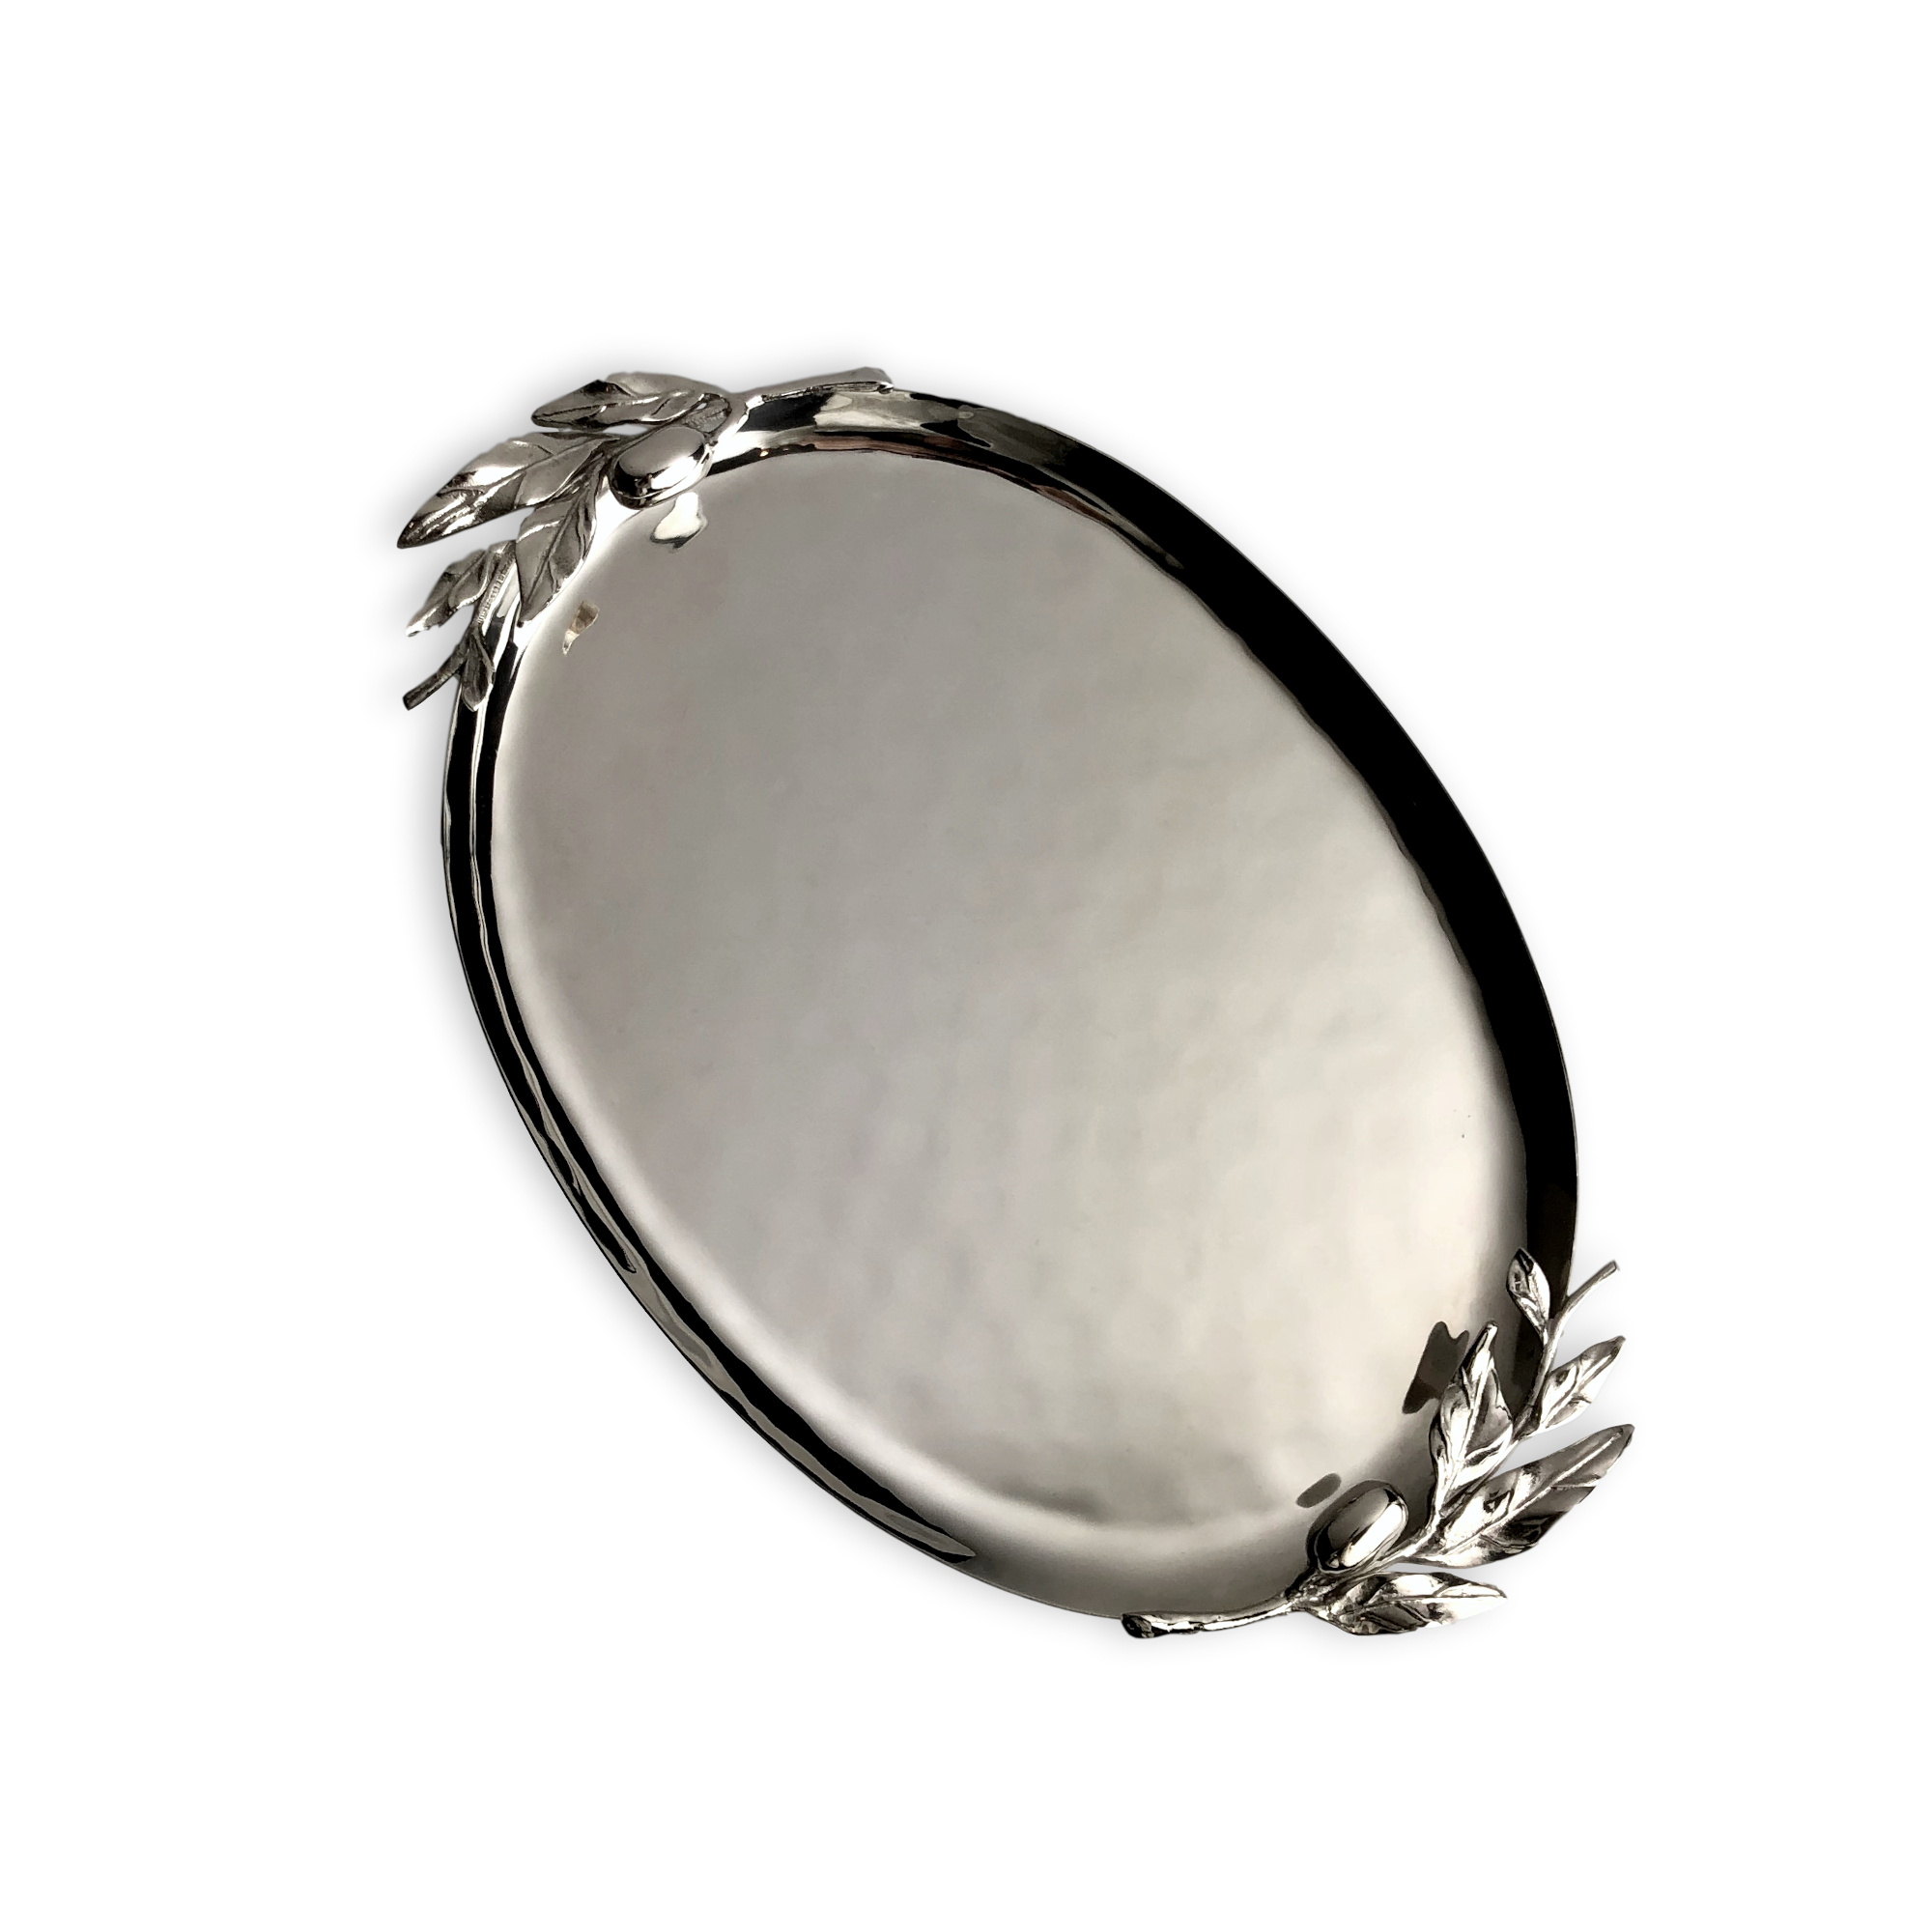 Carmel Ceramica Oliveira Stainless Steel Oval Tray